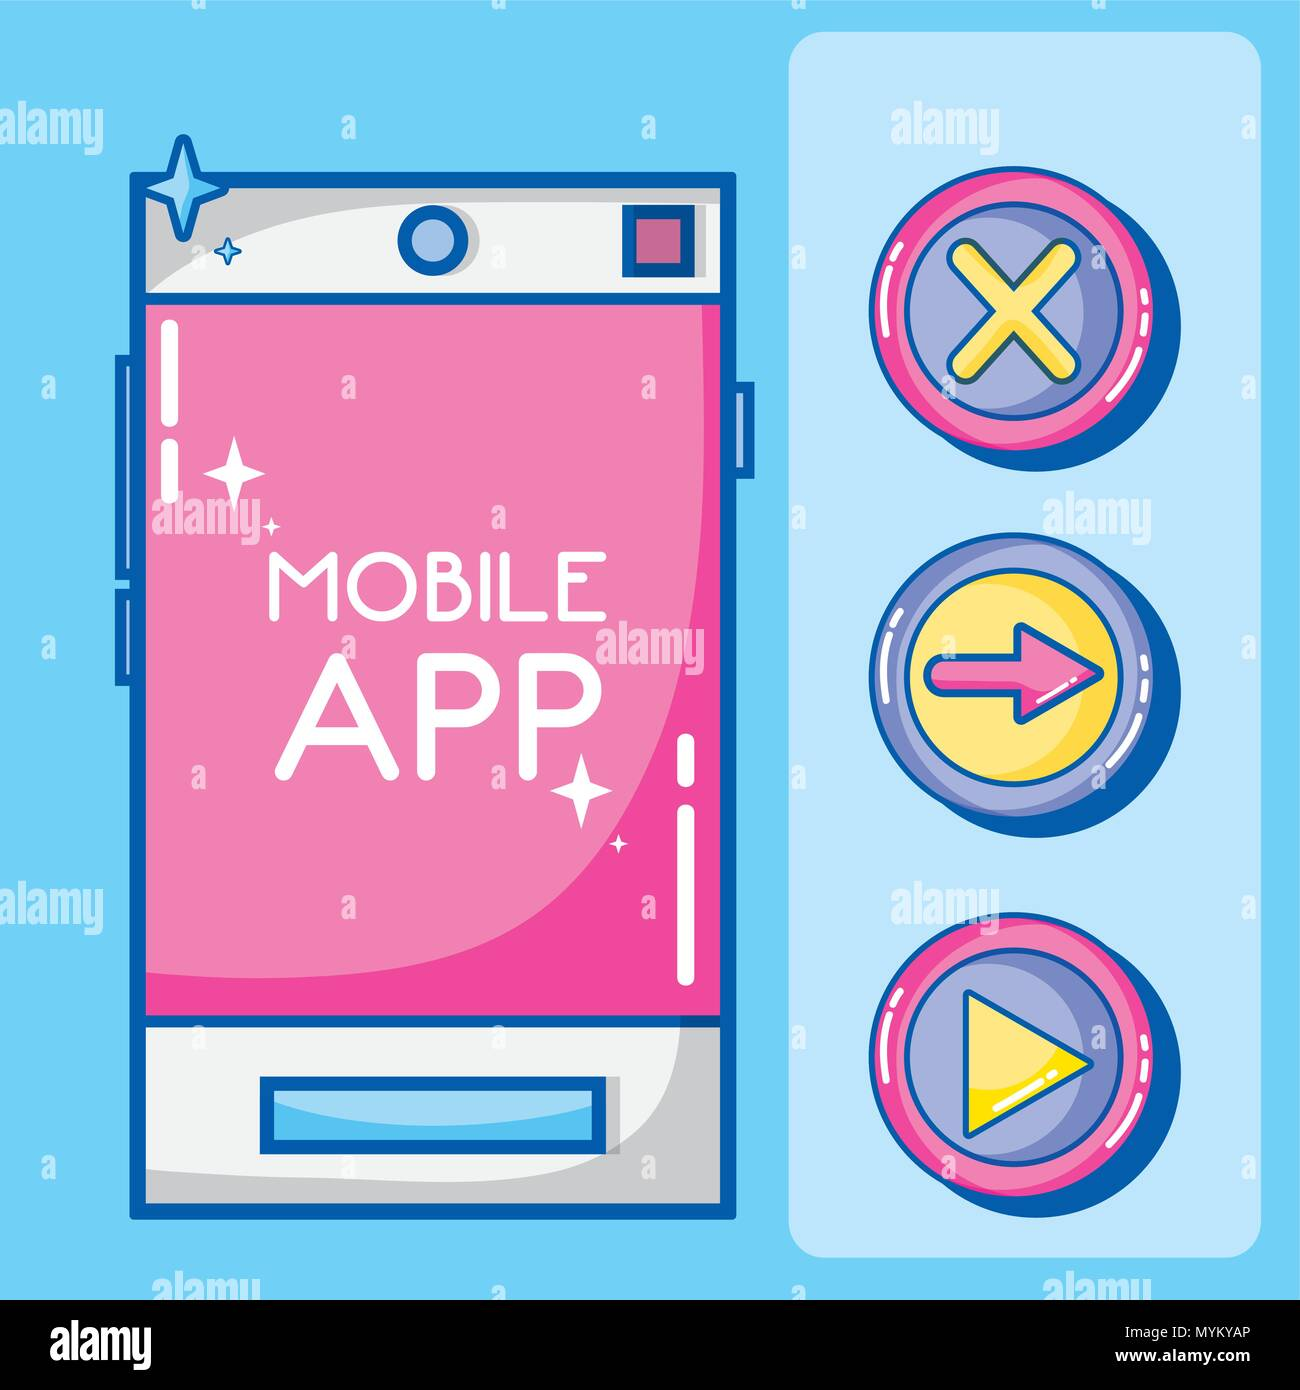 Mobile app technology Stock Vector